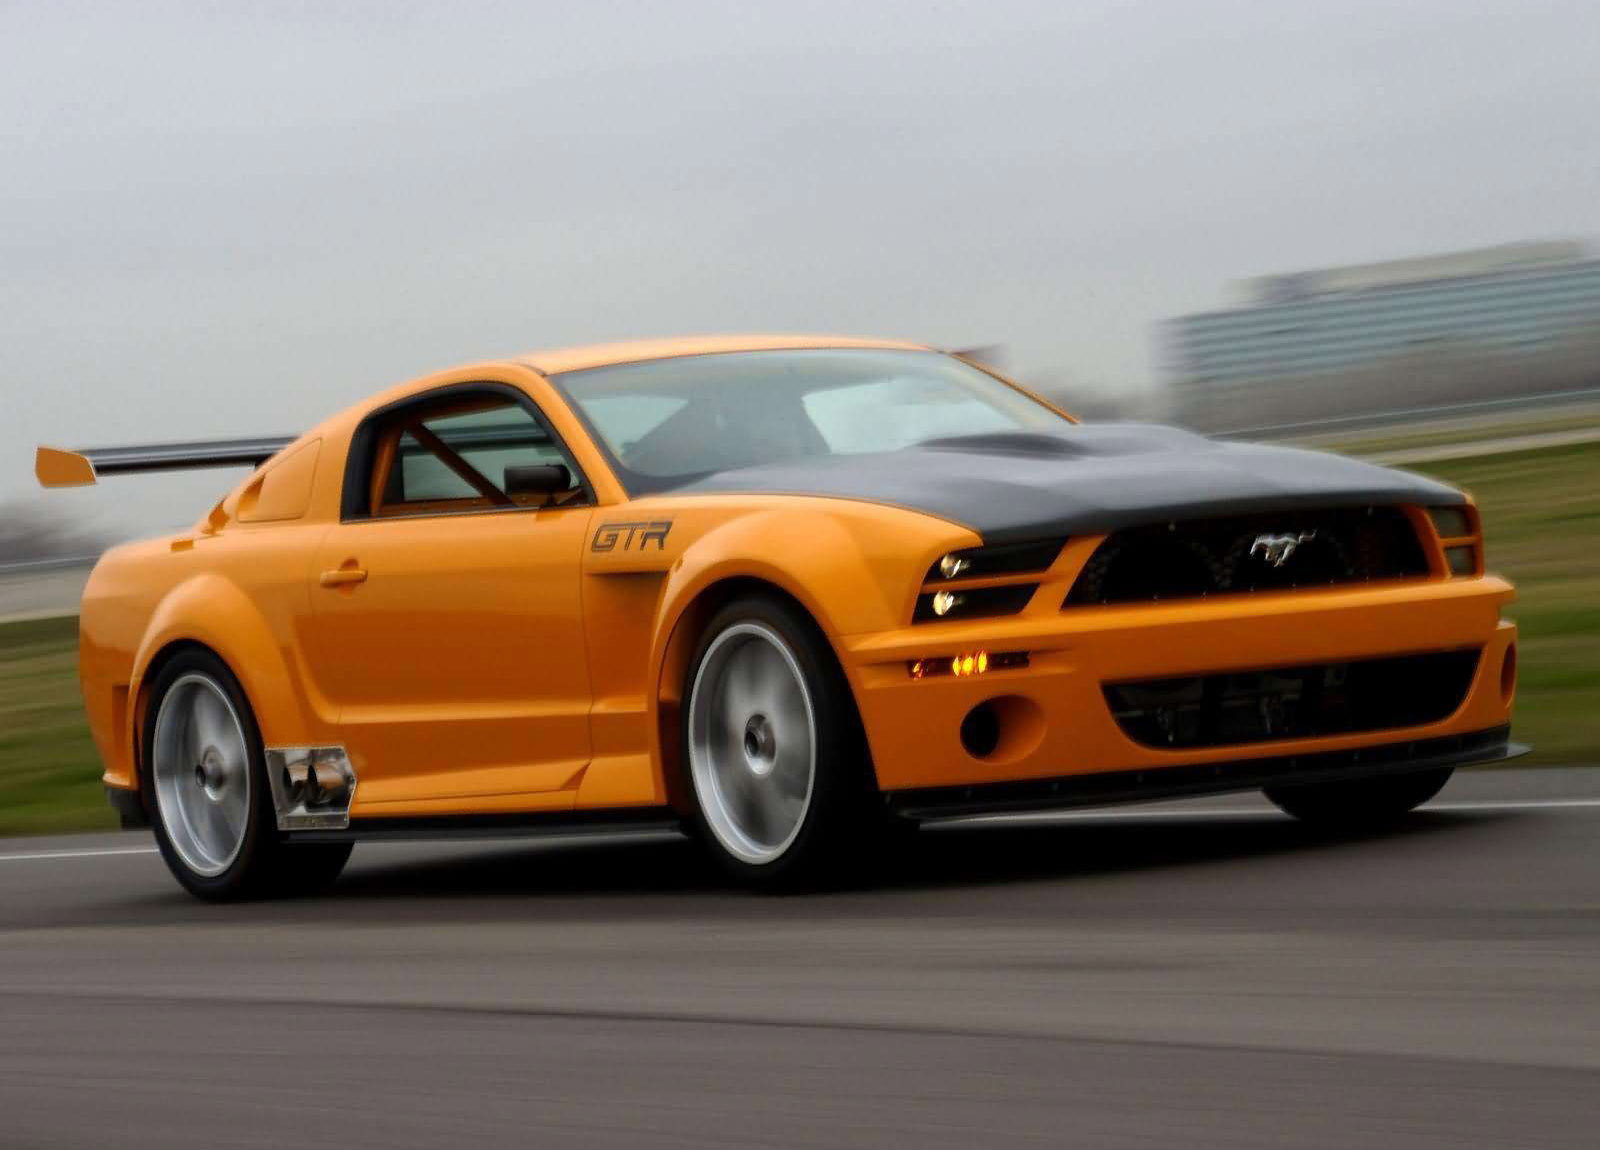 2018 Ford Mustang GTR 40th Anniversary Concept photo - 4